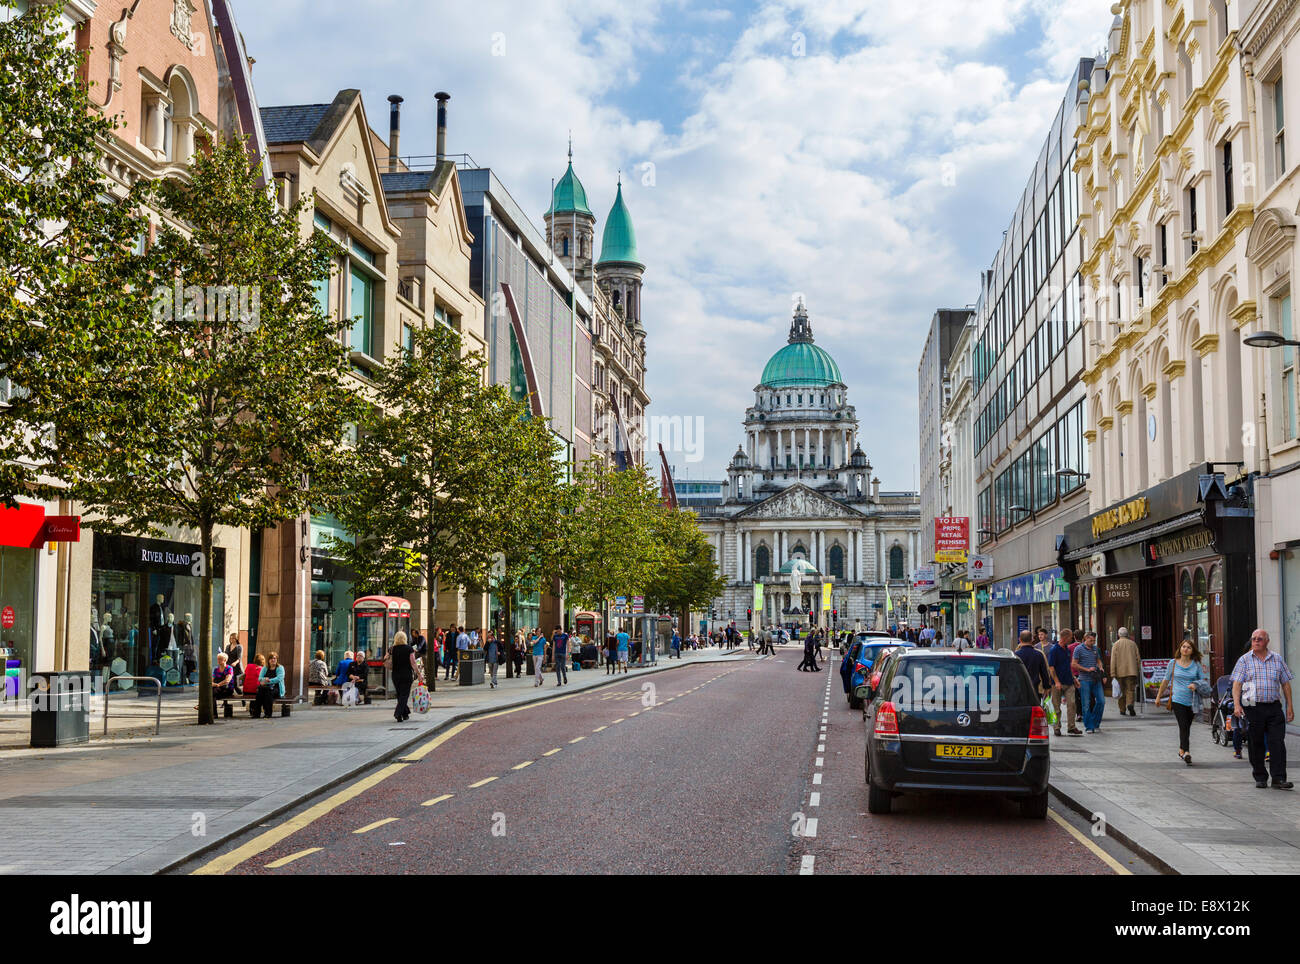 Shops on Donegall Place looking towards City Hall, Belfast, Northern Ireland, UK - Stock Image